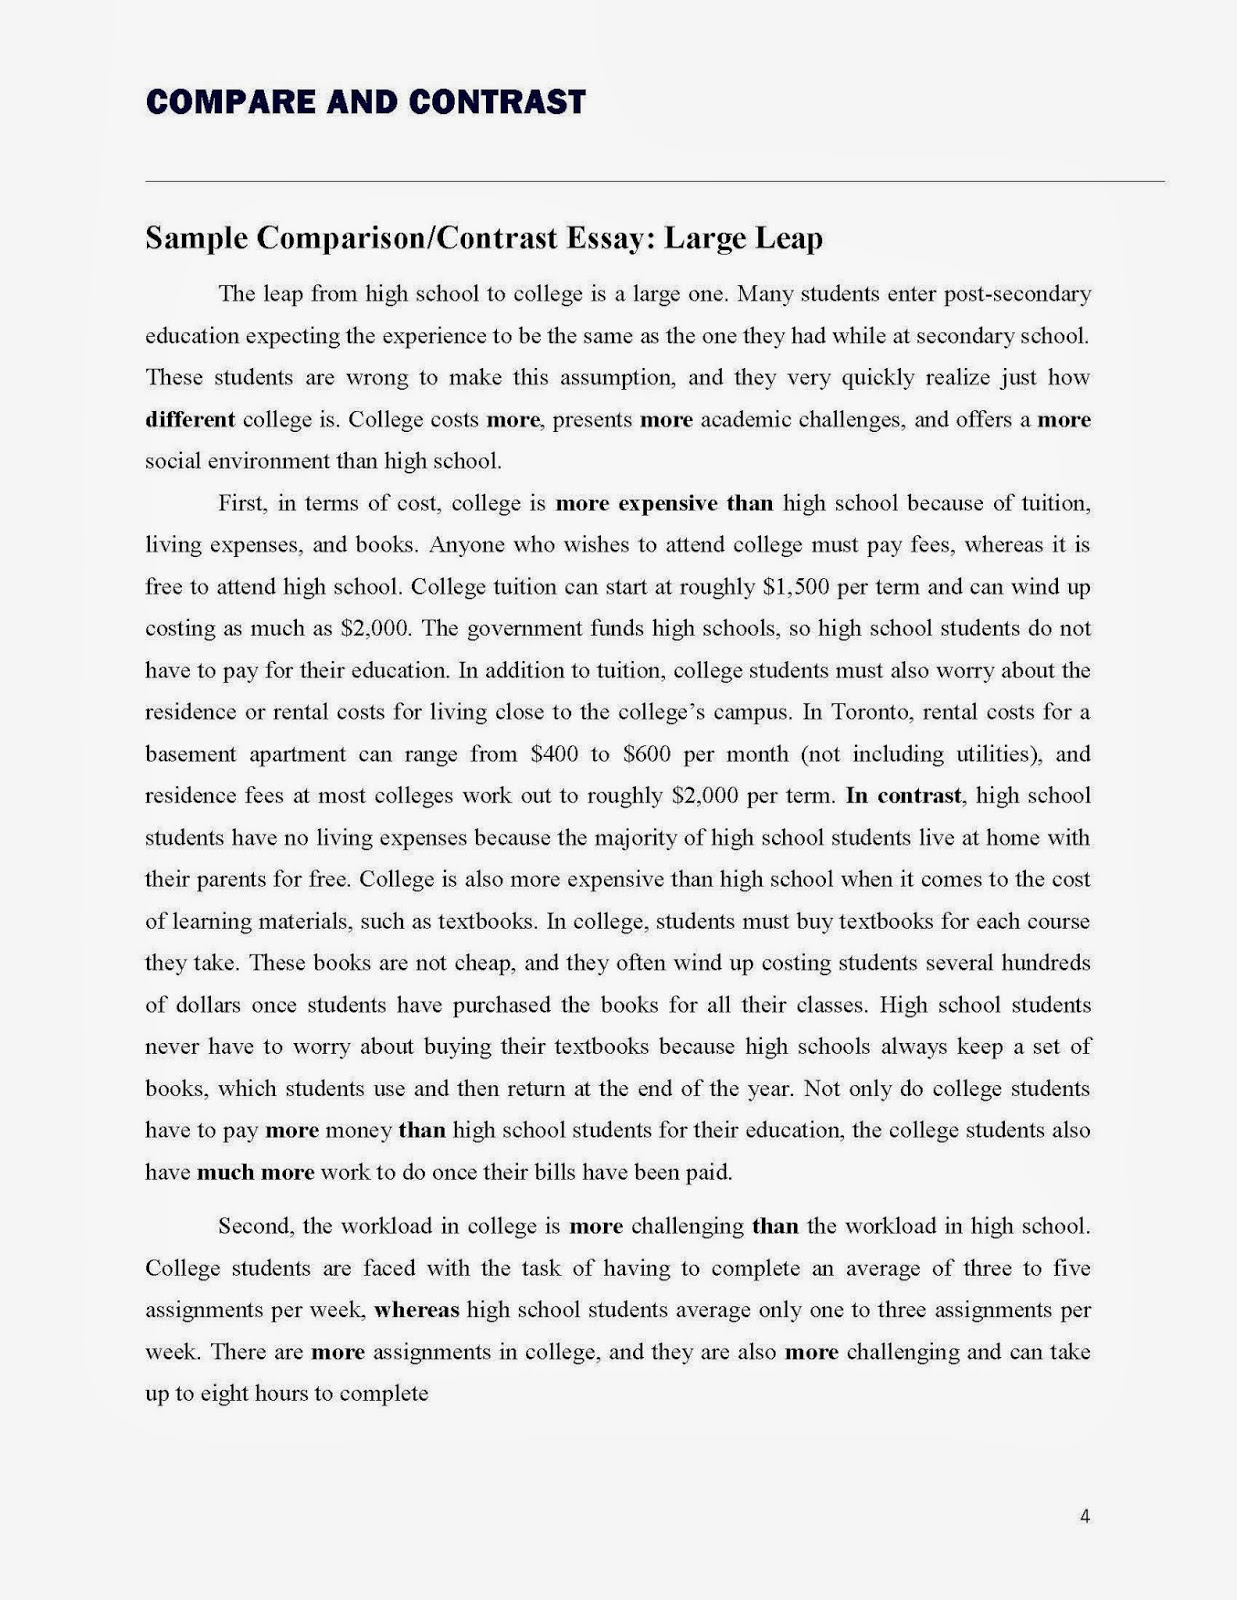 writing a comparison contrast essay The greatest advantage of compare and contrast essay is that you can write about anything you like after all, we compare things on a regular basis without even realizing it you compare food items while grocery shopping, movies, books, teachers or professors, and so much more.